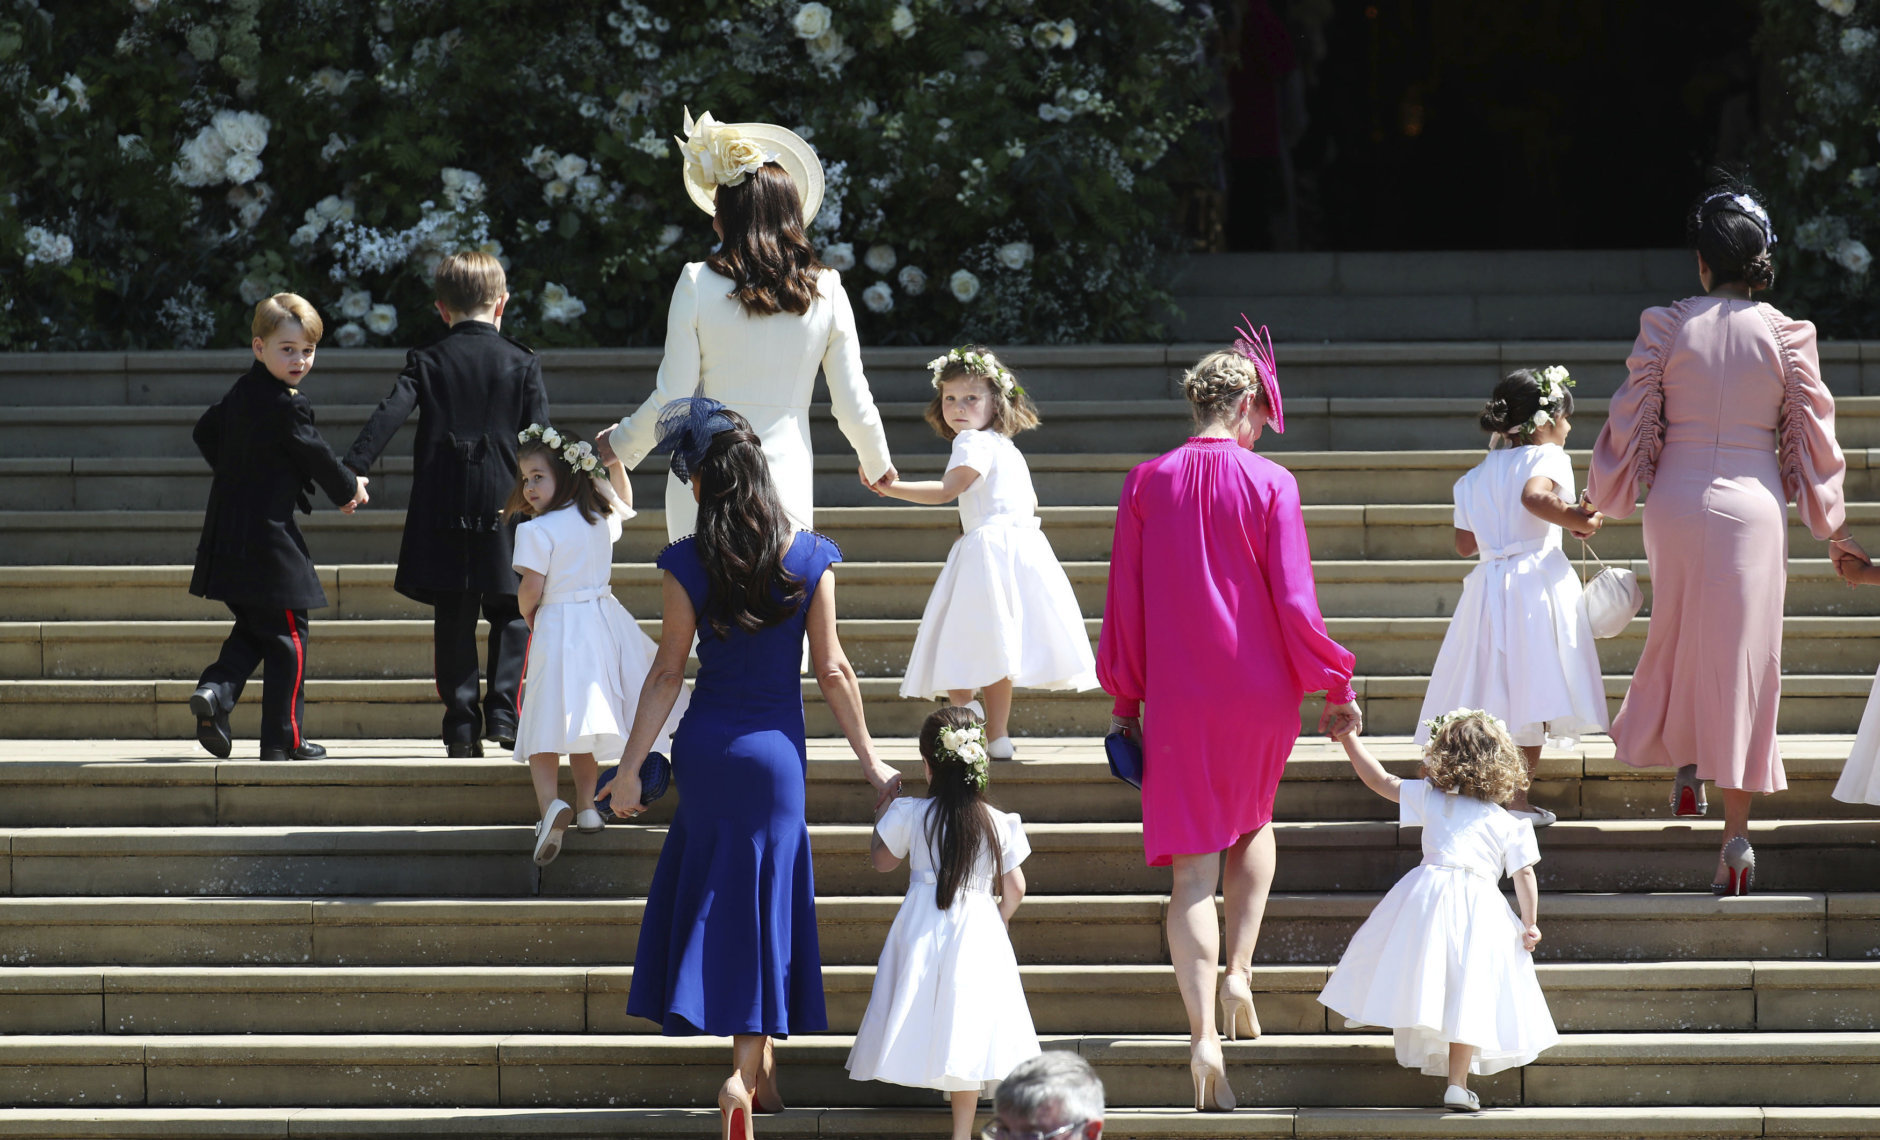 Britain's Prince George, left, Princess Charlotte, third left, Kate, the Duchess of Cambridge, background fourth left and Jessica Mulroney foreground arrive with the bridesmaids and page boys for the wedding ceremony of Prince Harry and Meghan Markle at St. George's Chapel in Windsor Castle in Windsor, near London, England, Saturday, May 19, 2018. (Jane Barlow/pool photo via AP)